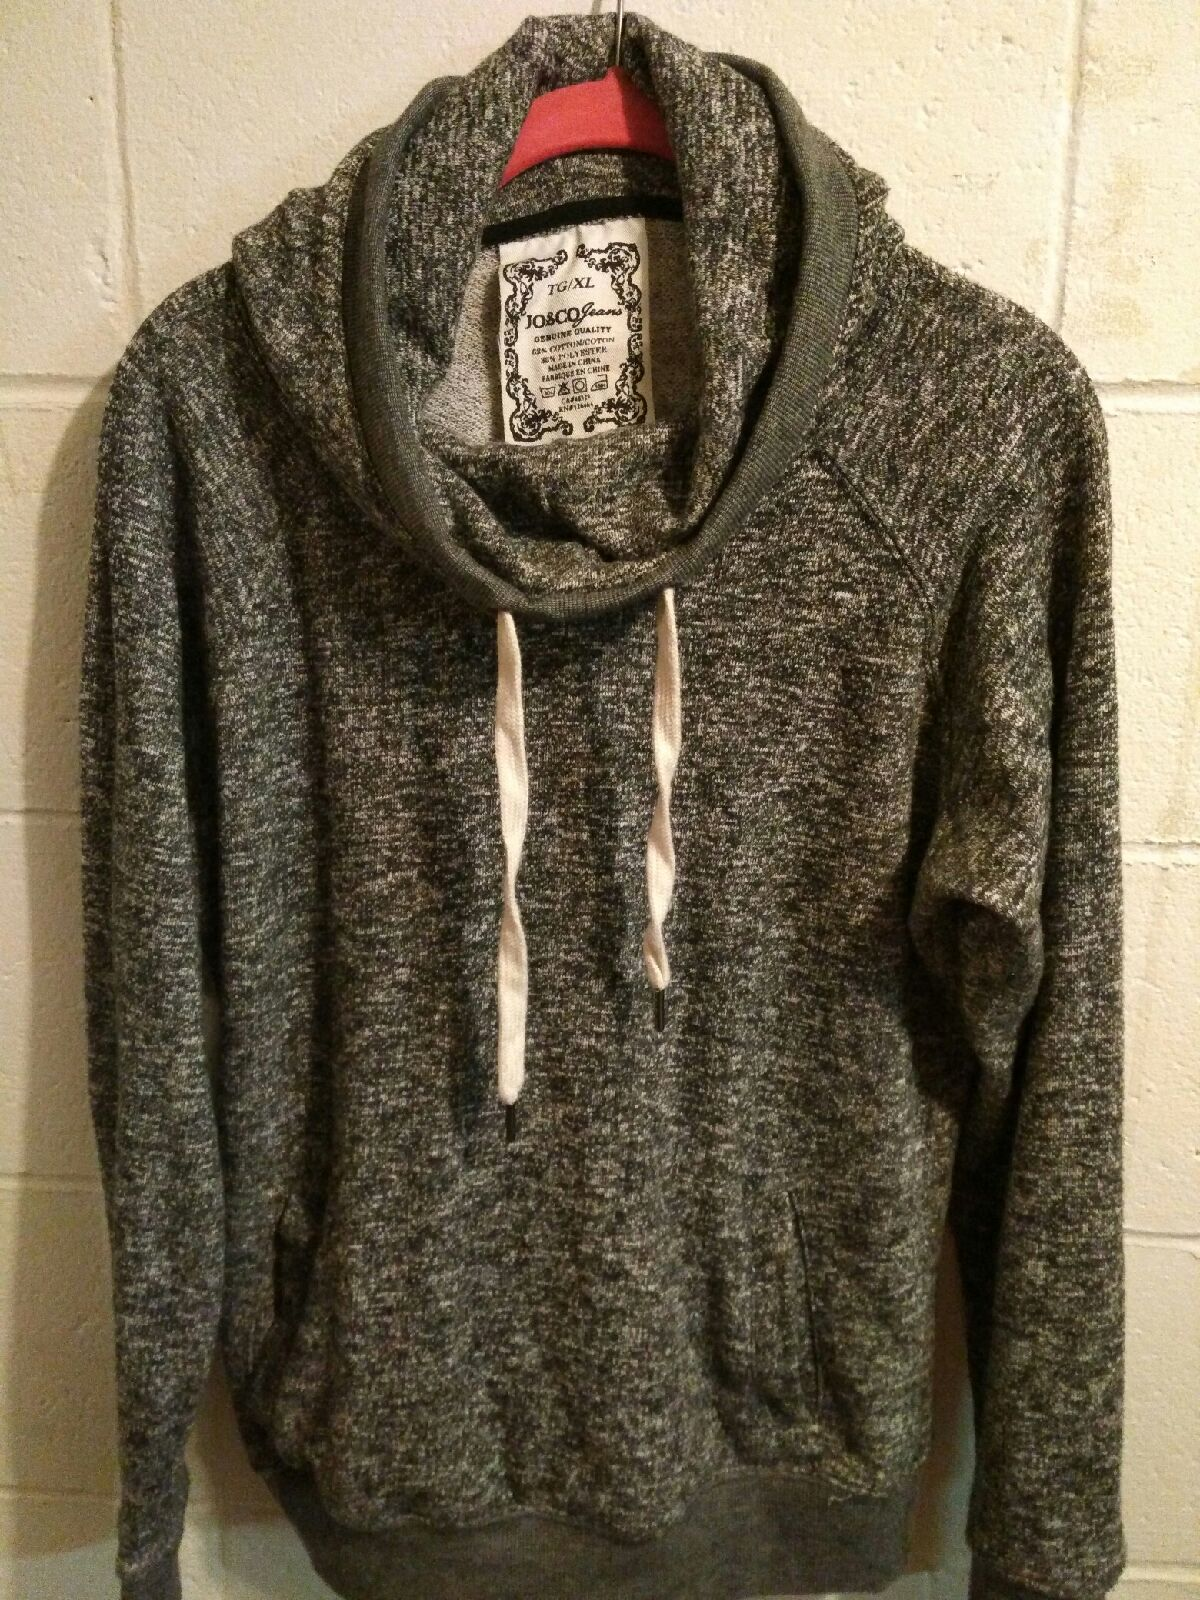 Slouchy Gray Hooded Sweater - Mercari: BUY & SELL THINGS YOU LOVE